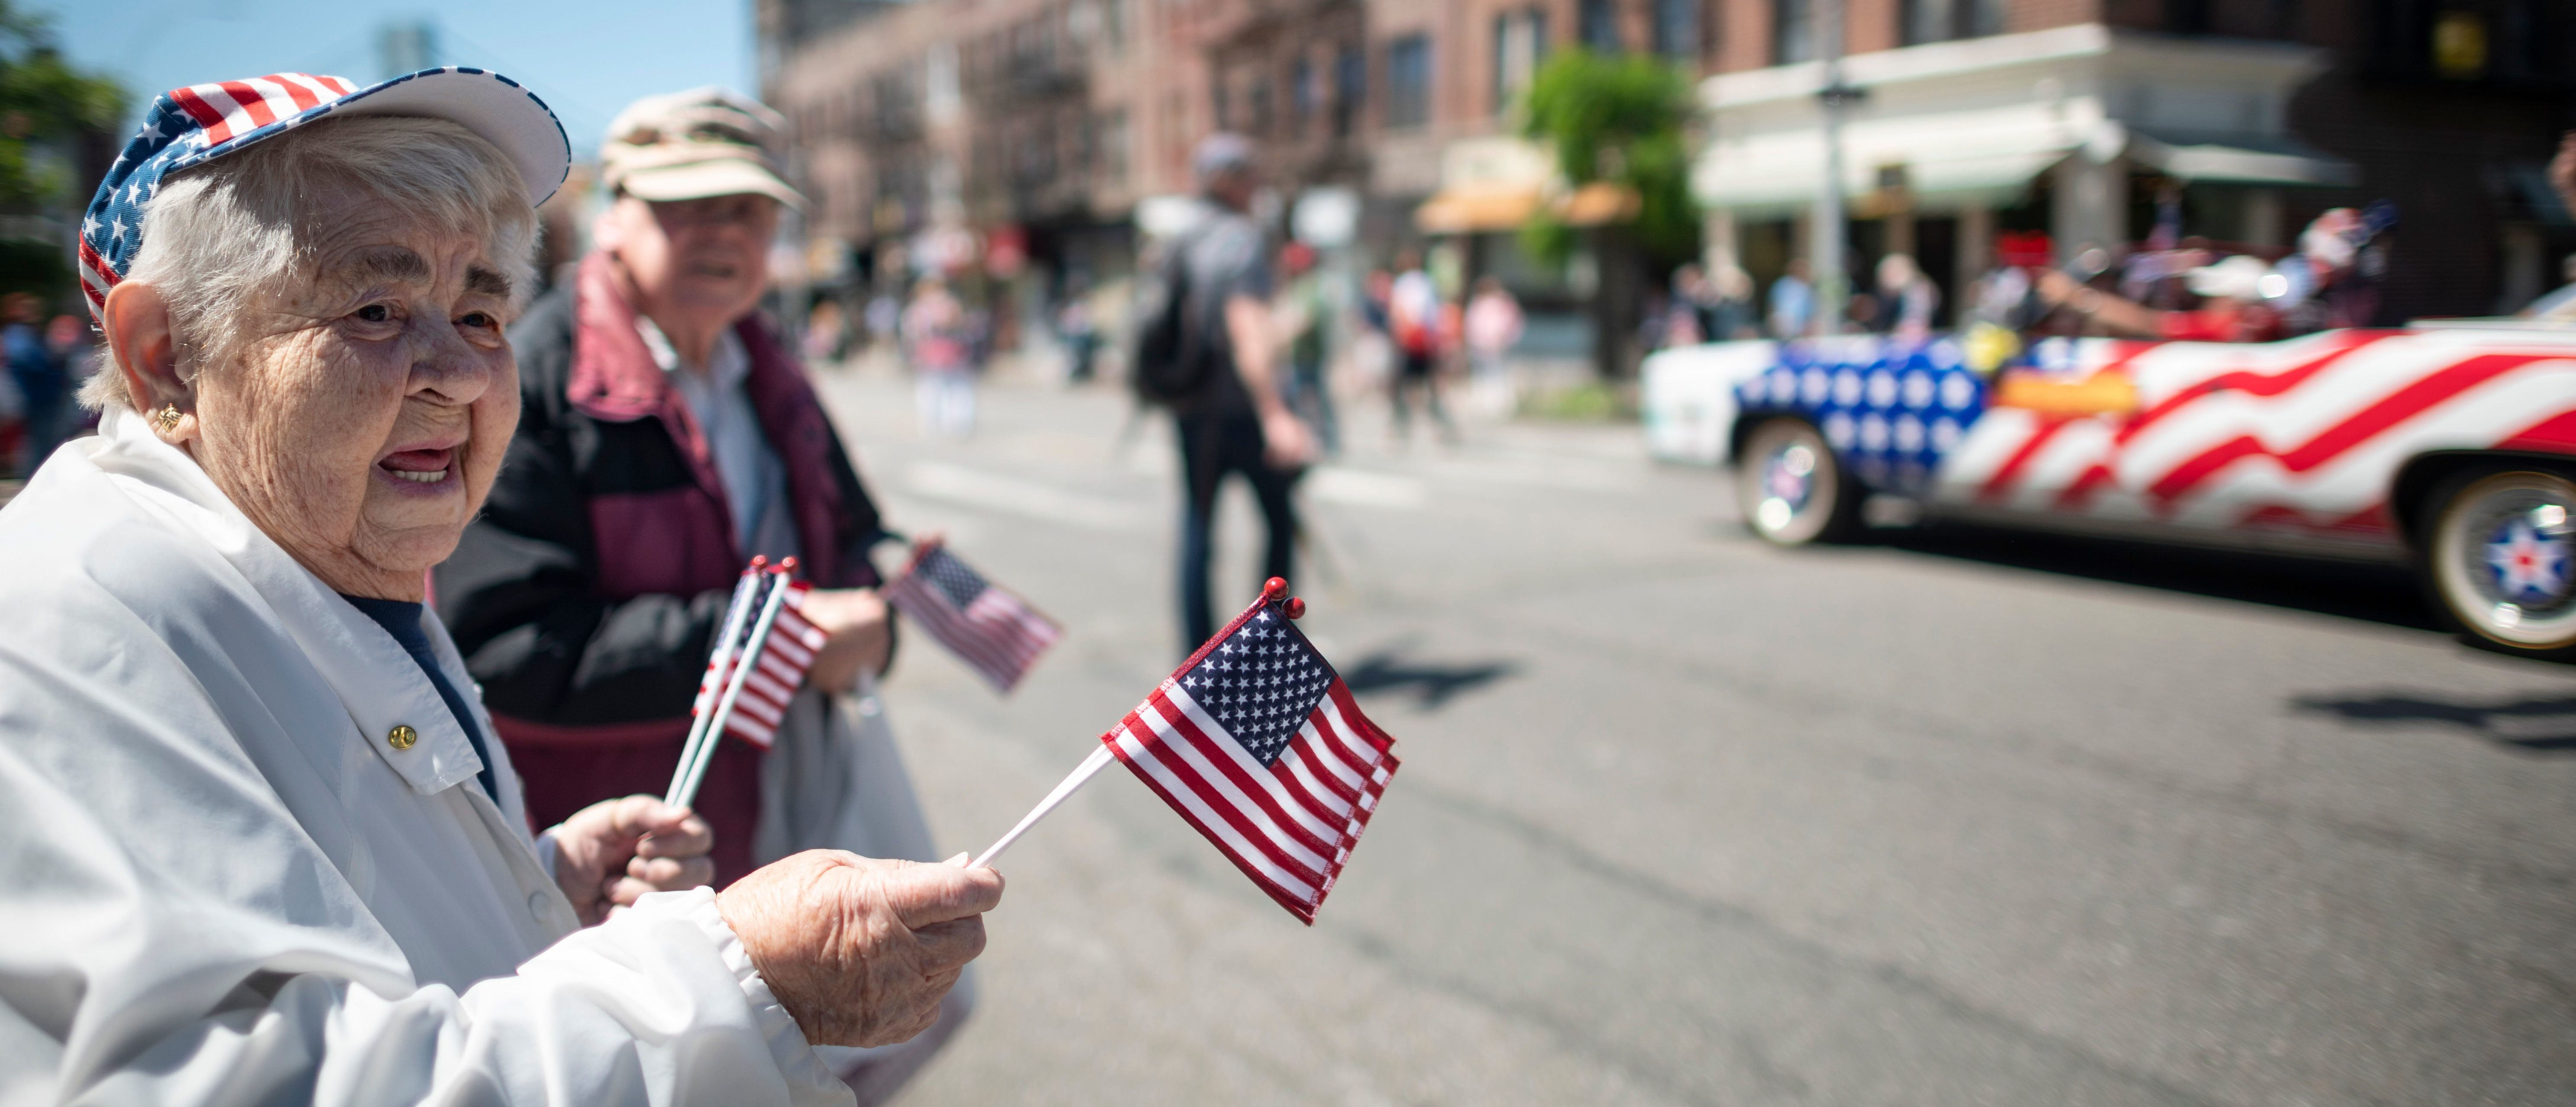 An elderly woman waves American flags to veterans as they march on the street May 27, 2019 during the 152nd Memorial Day Parade in the New York City borough of Brooklyn. (JOHANNES EISELE/AFP/Getty Images)